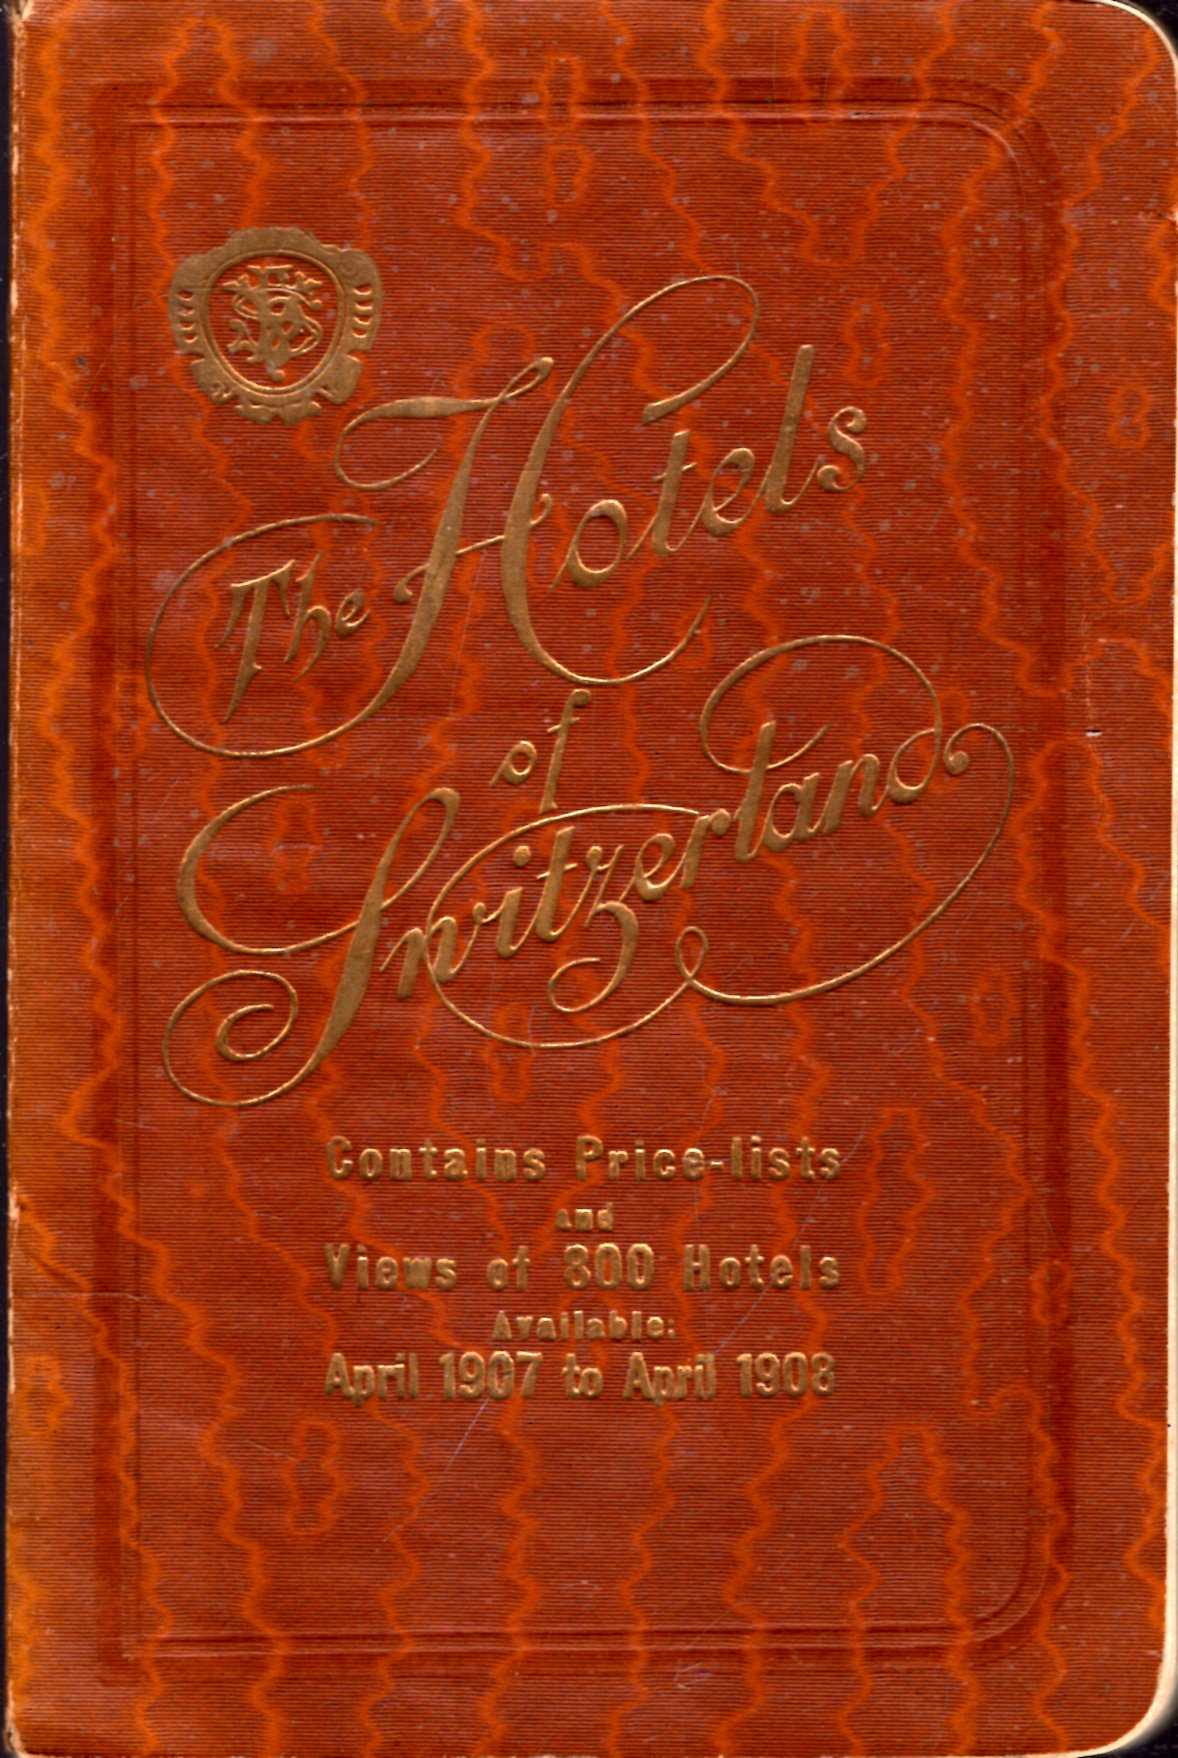 Image for The Hotels of Switzerland, with Appendix: available from 1st April 1907 to 1st April 1908